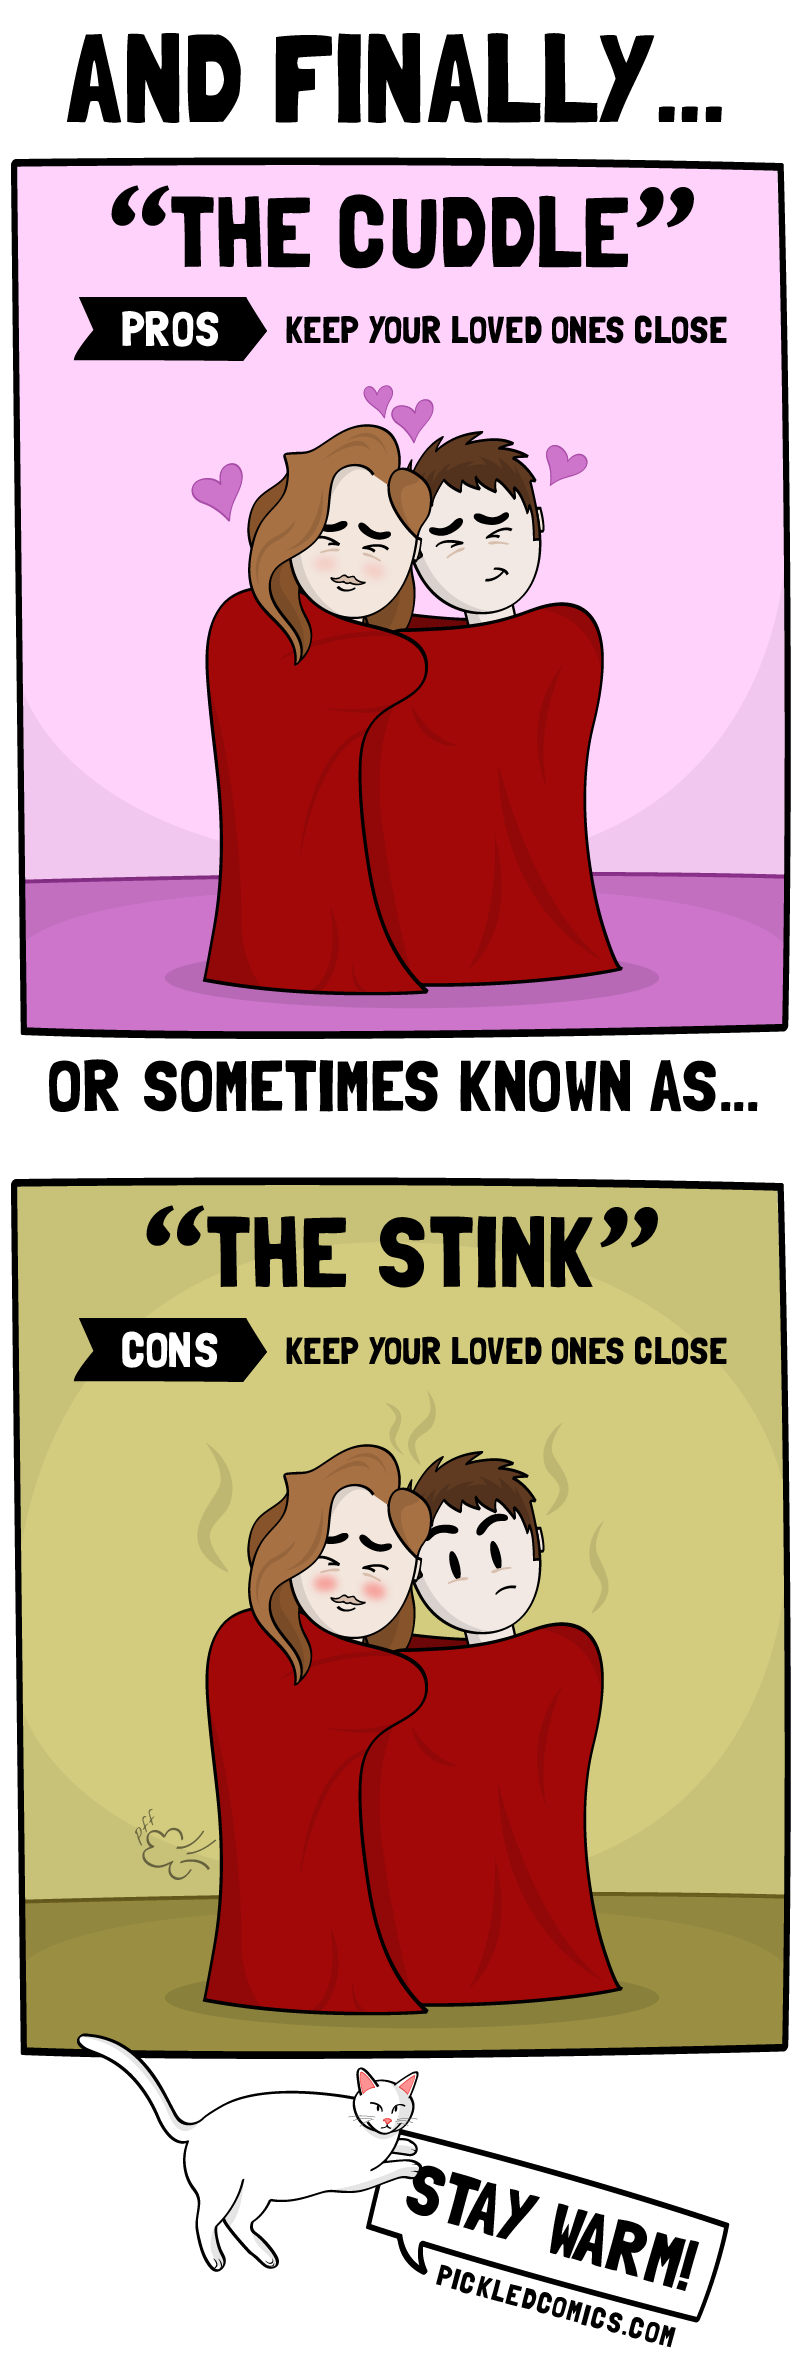 And Finally, The Cuddle. Pros: Keep your loved ones close. Or sometimes known as, The Stink. Cons: Keep your loved ones close.